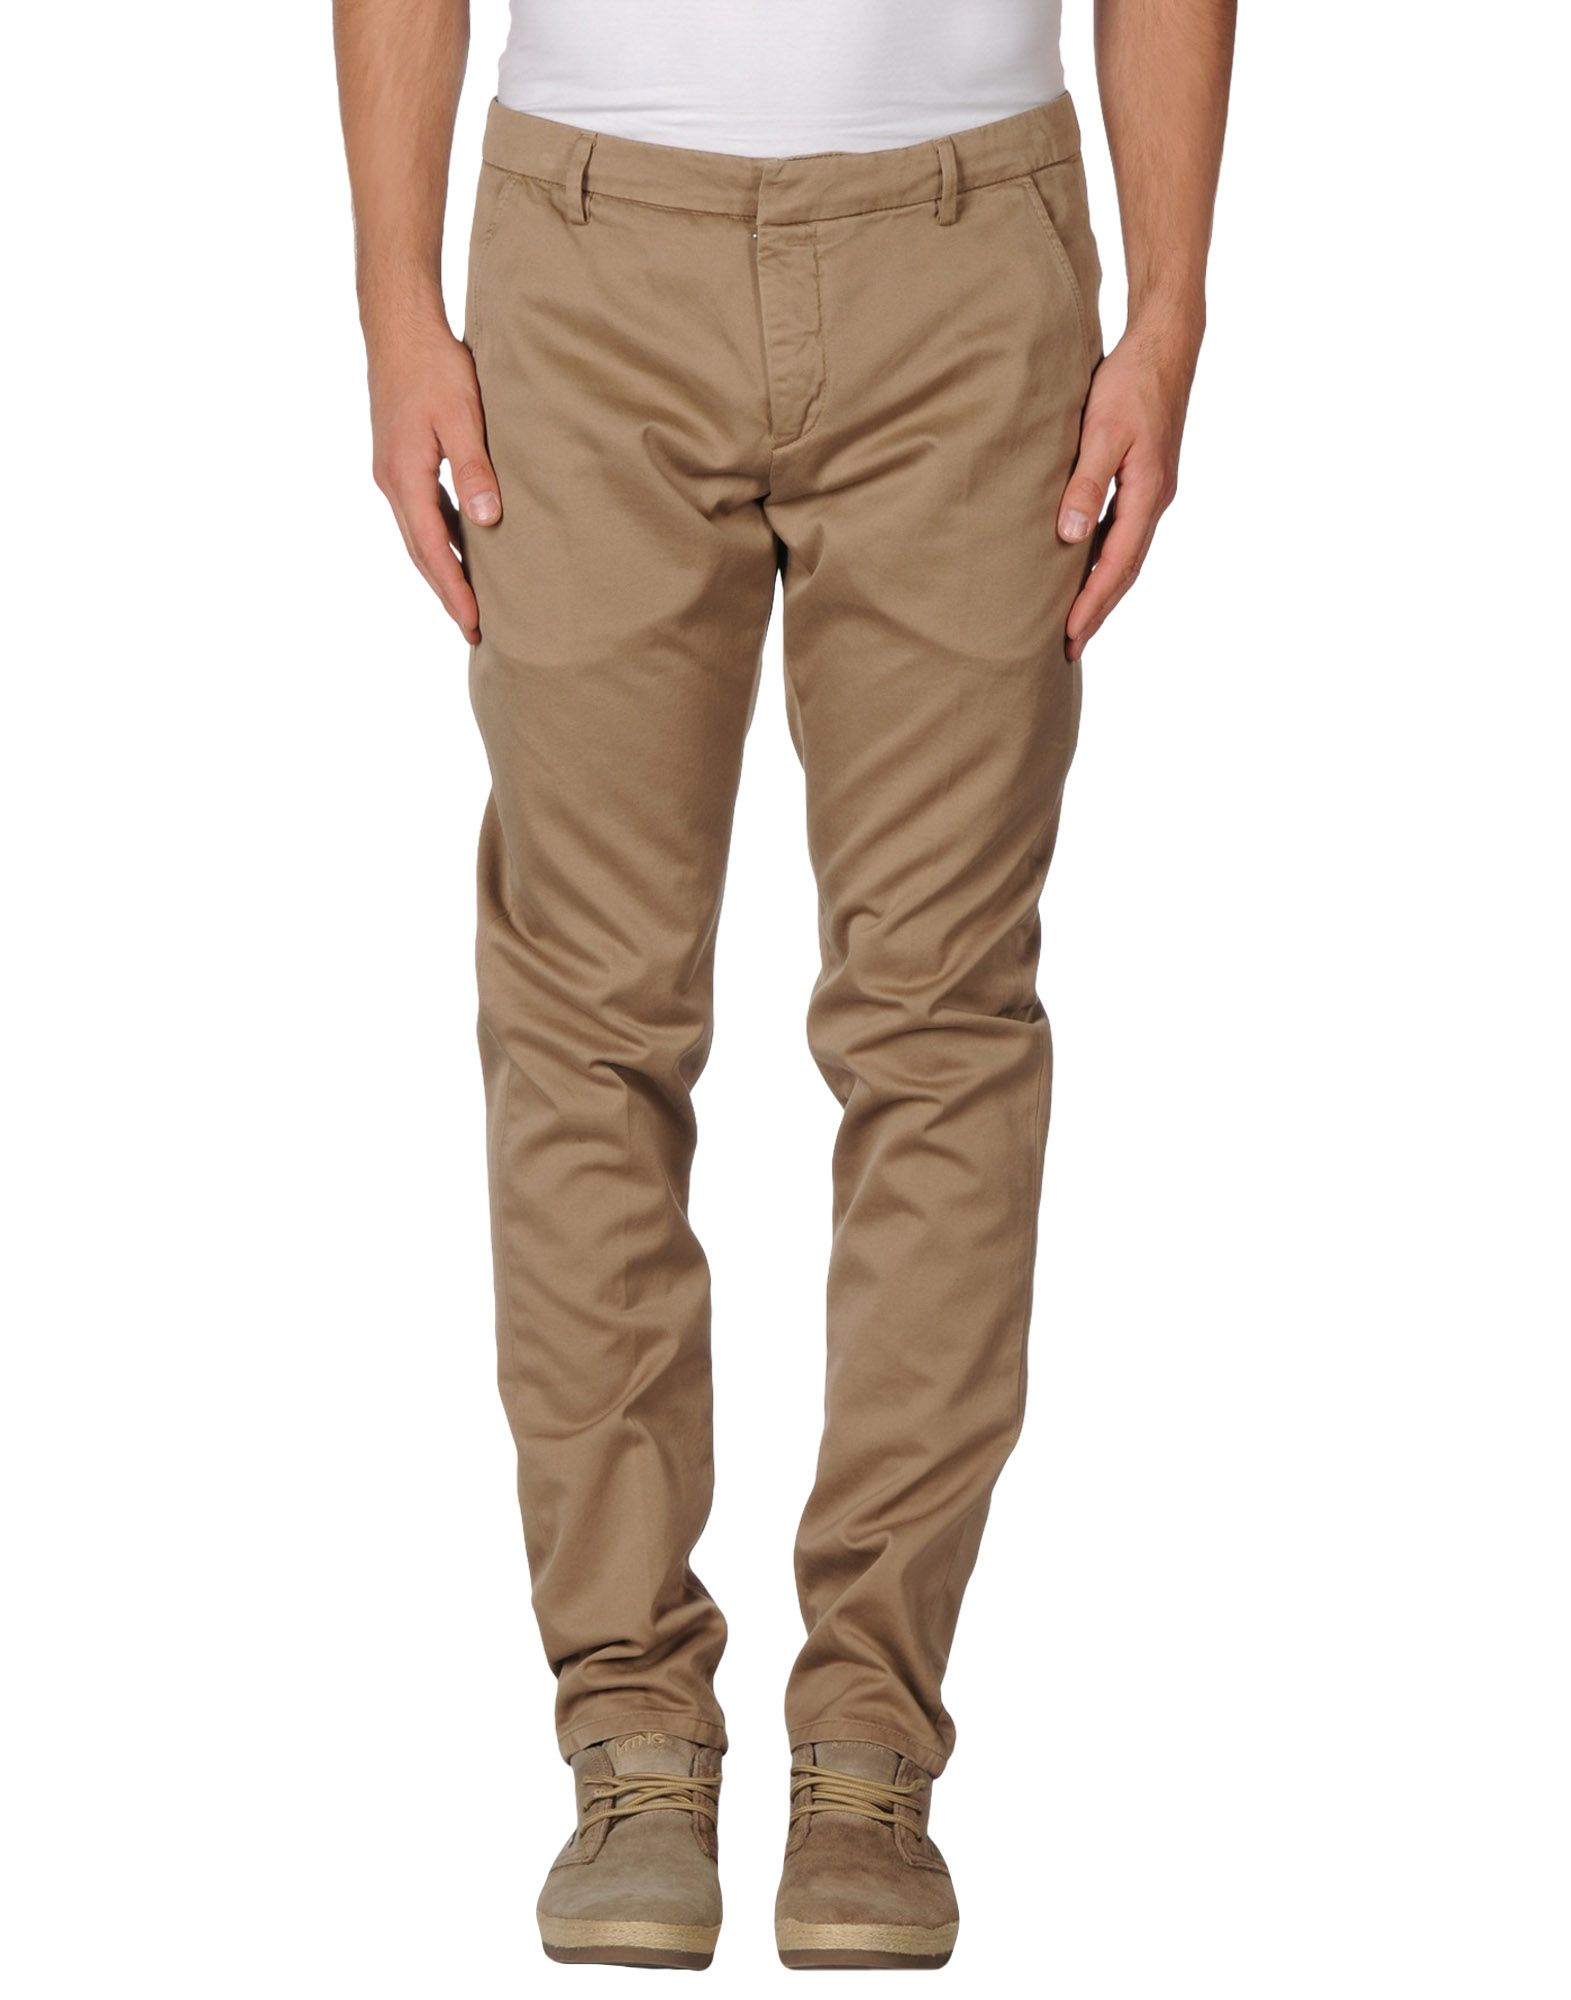 Find Cargo Khaki Pants for Men, Slim Cargo Khaki Pants for Men and more, at Macy's. Macy's Presents: The Edit - A curated mix of fashion and inspiration Check It Out Free Shipping with $49 purchase + Free Store Pickup.